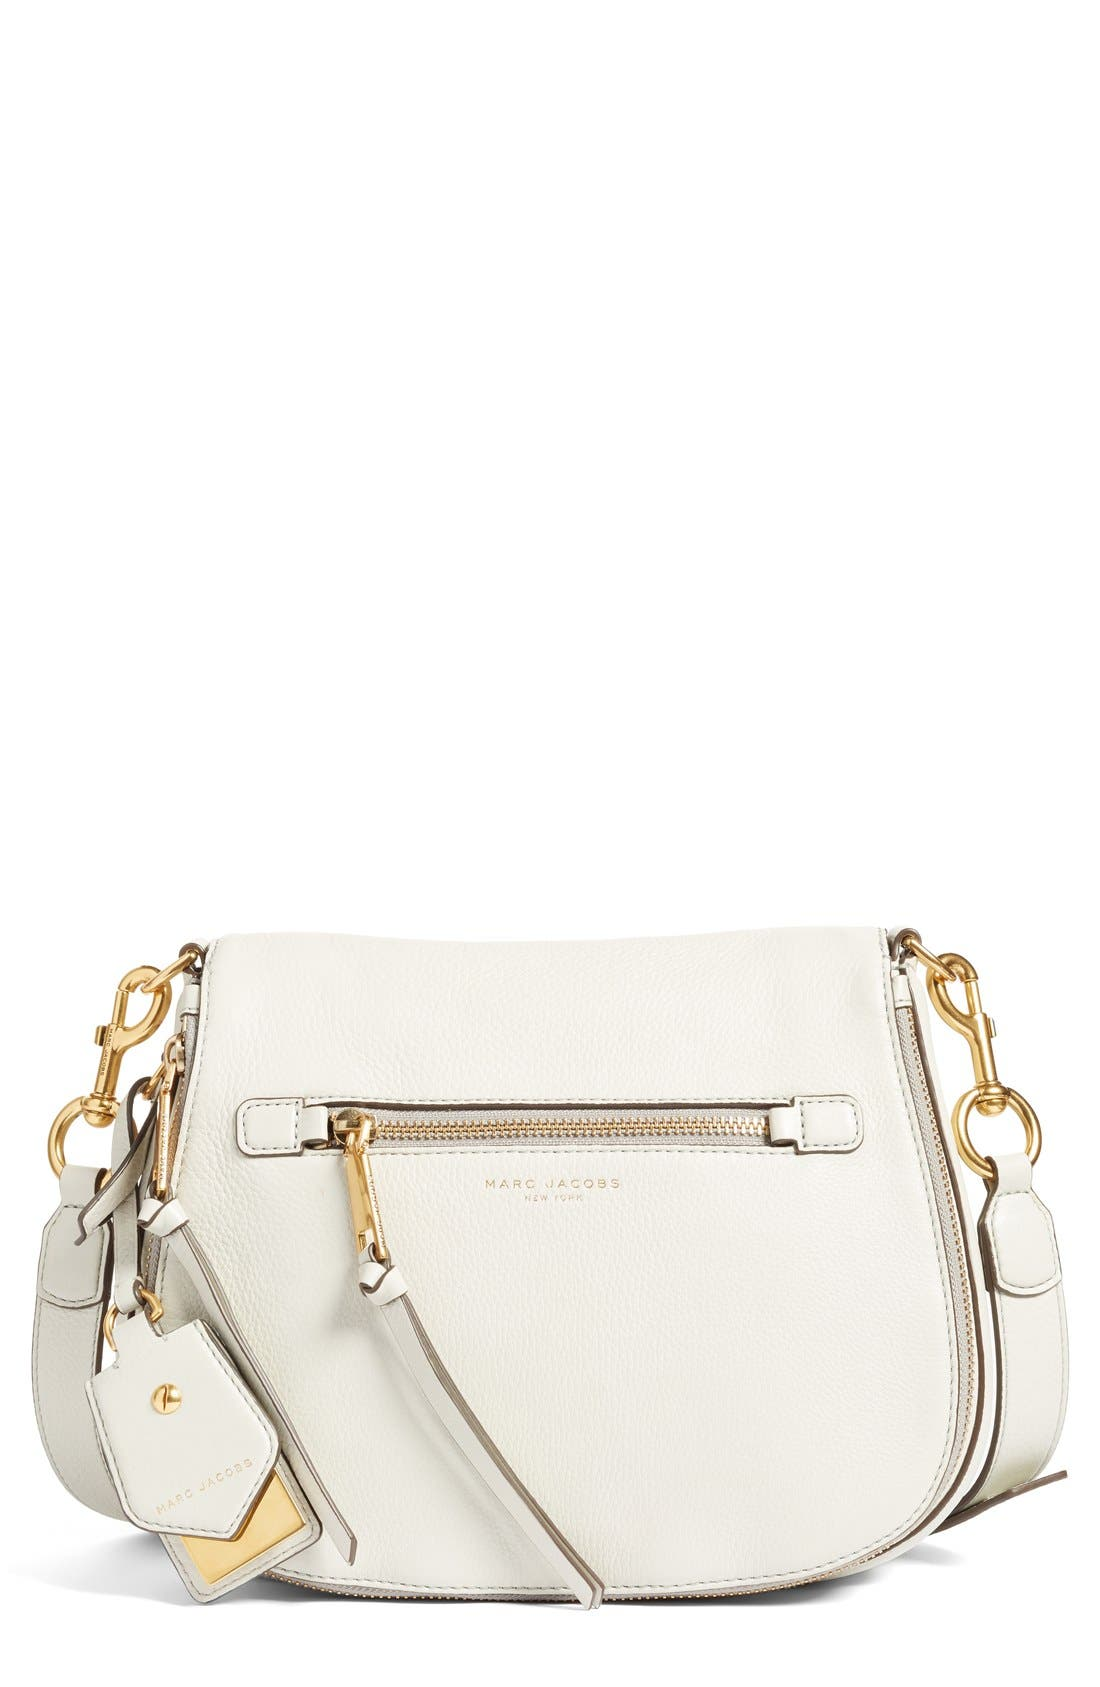 Main Image - MARC JACOBS Recruit Nomad Pebbled Leather Crossbody Bag